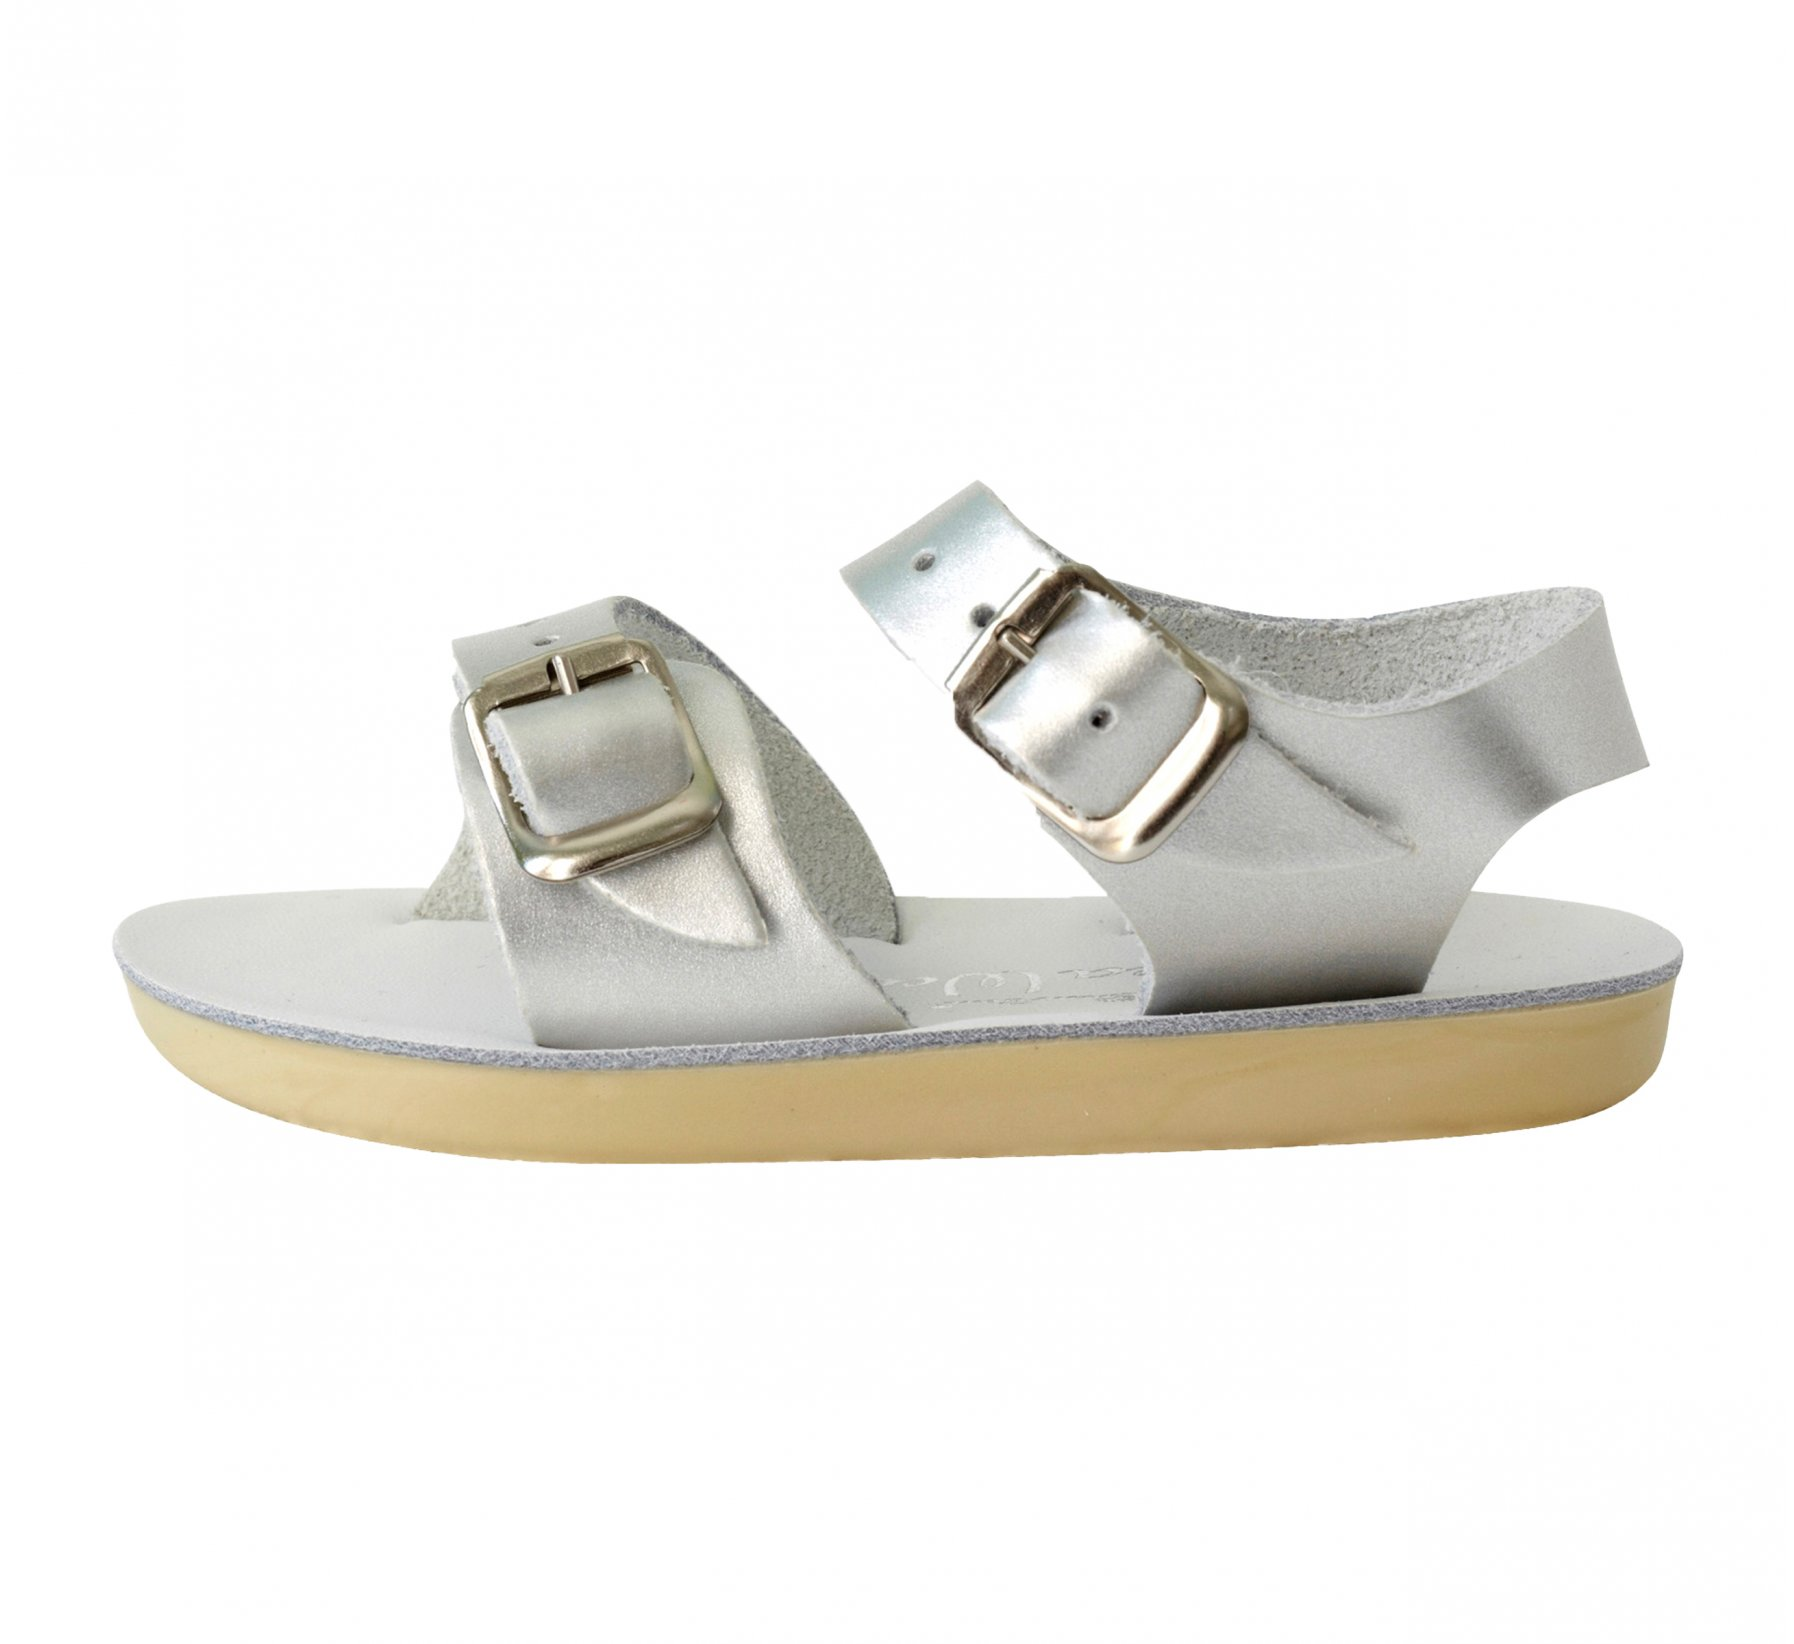 Seawee Silver - Salt Water Sandals